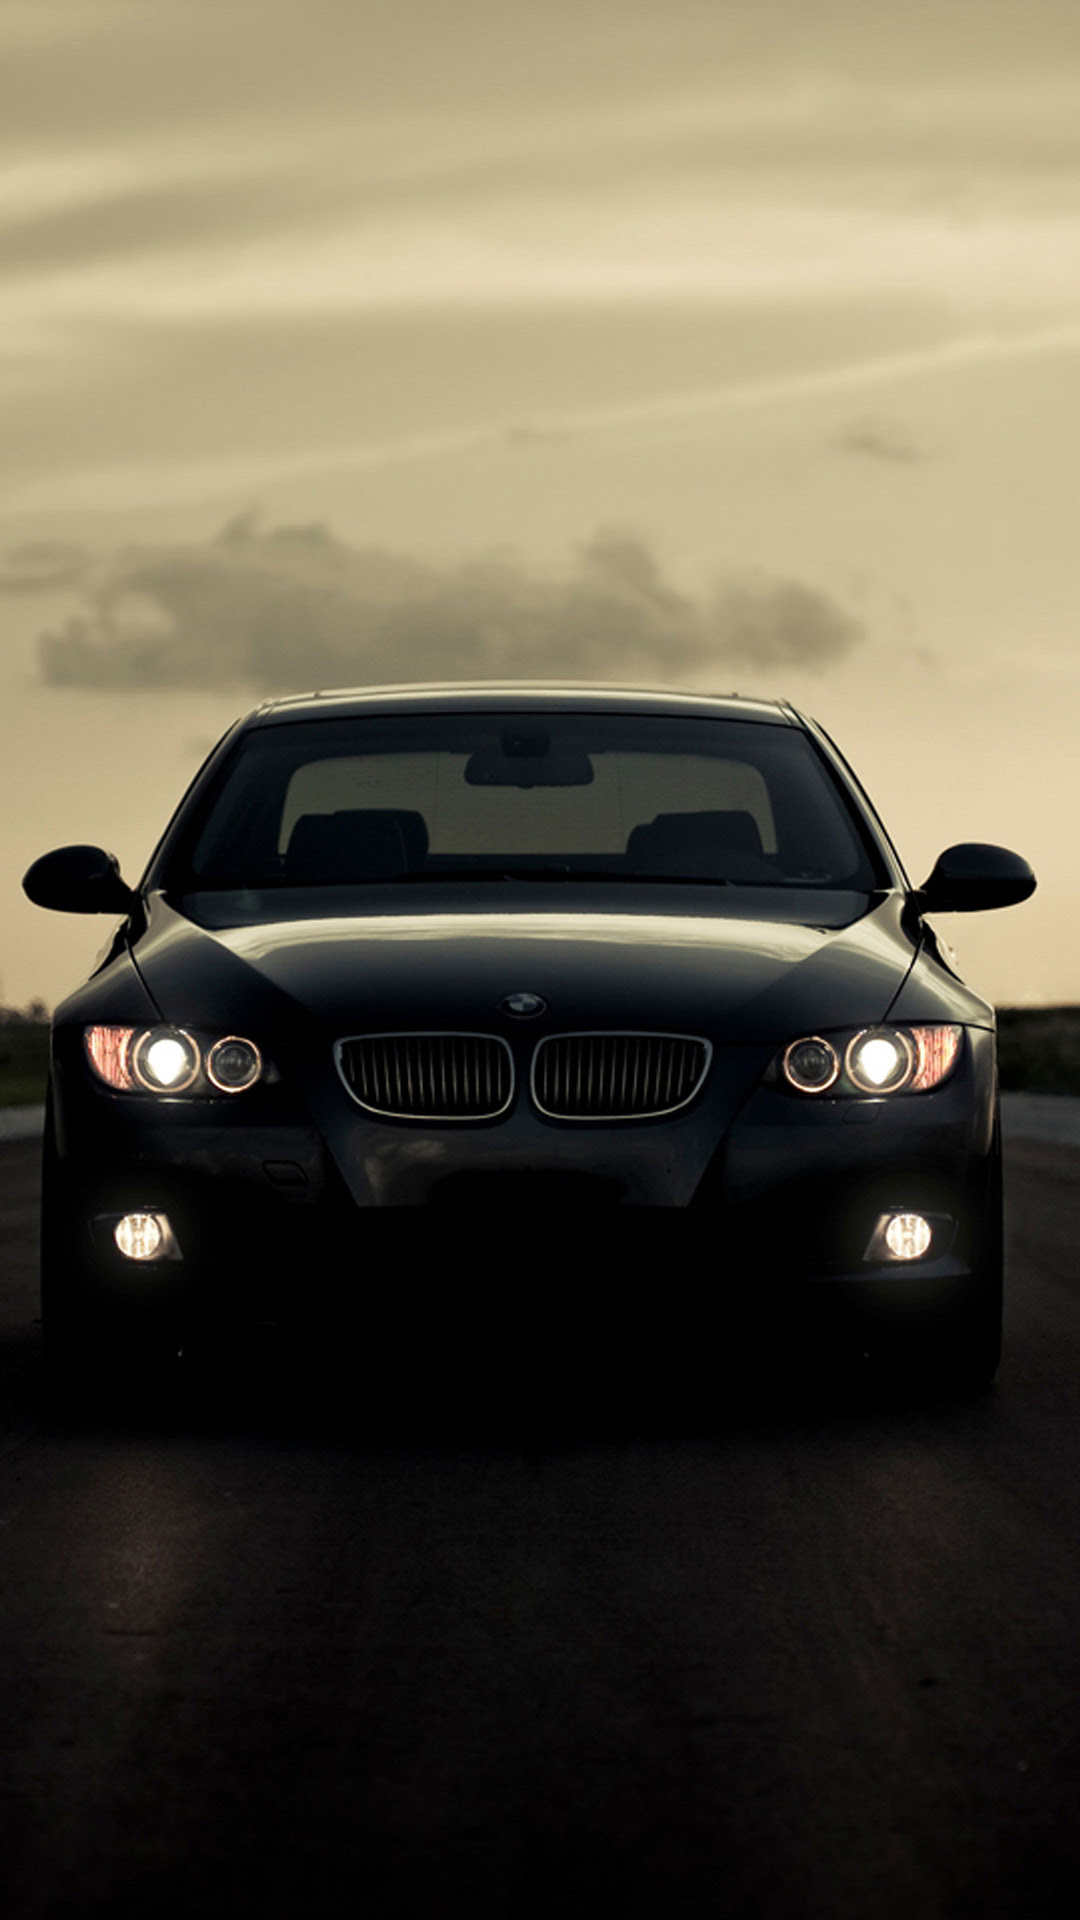 BMW 335i HD Wallpaper iPhone 6 plus  wallpapersmobile.net